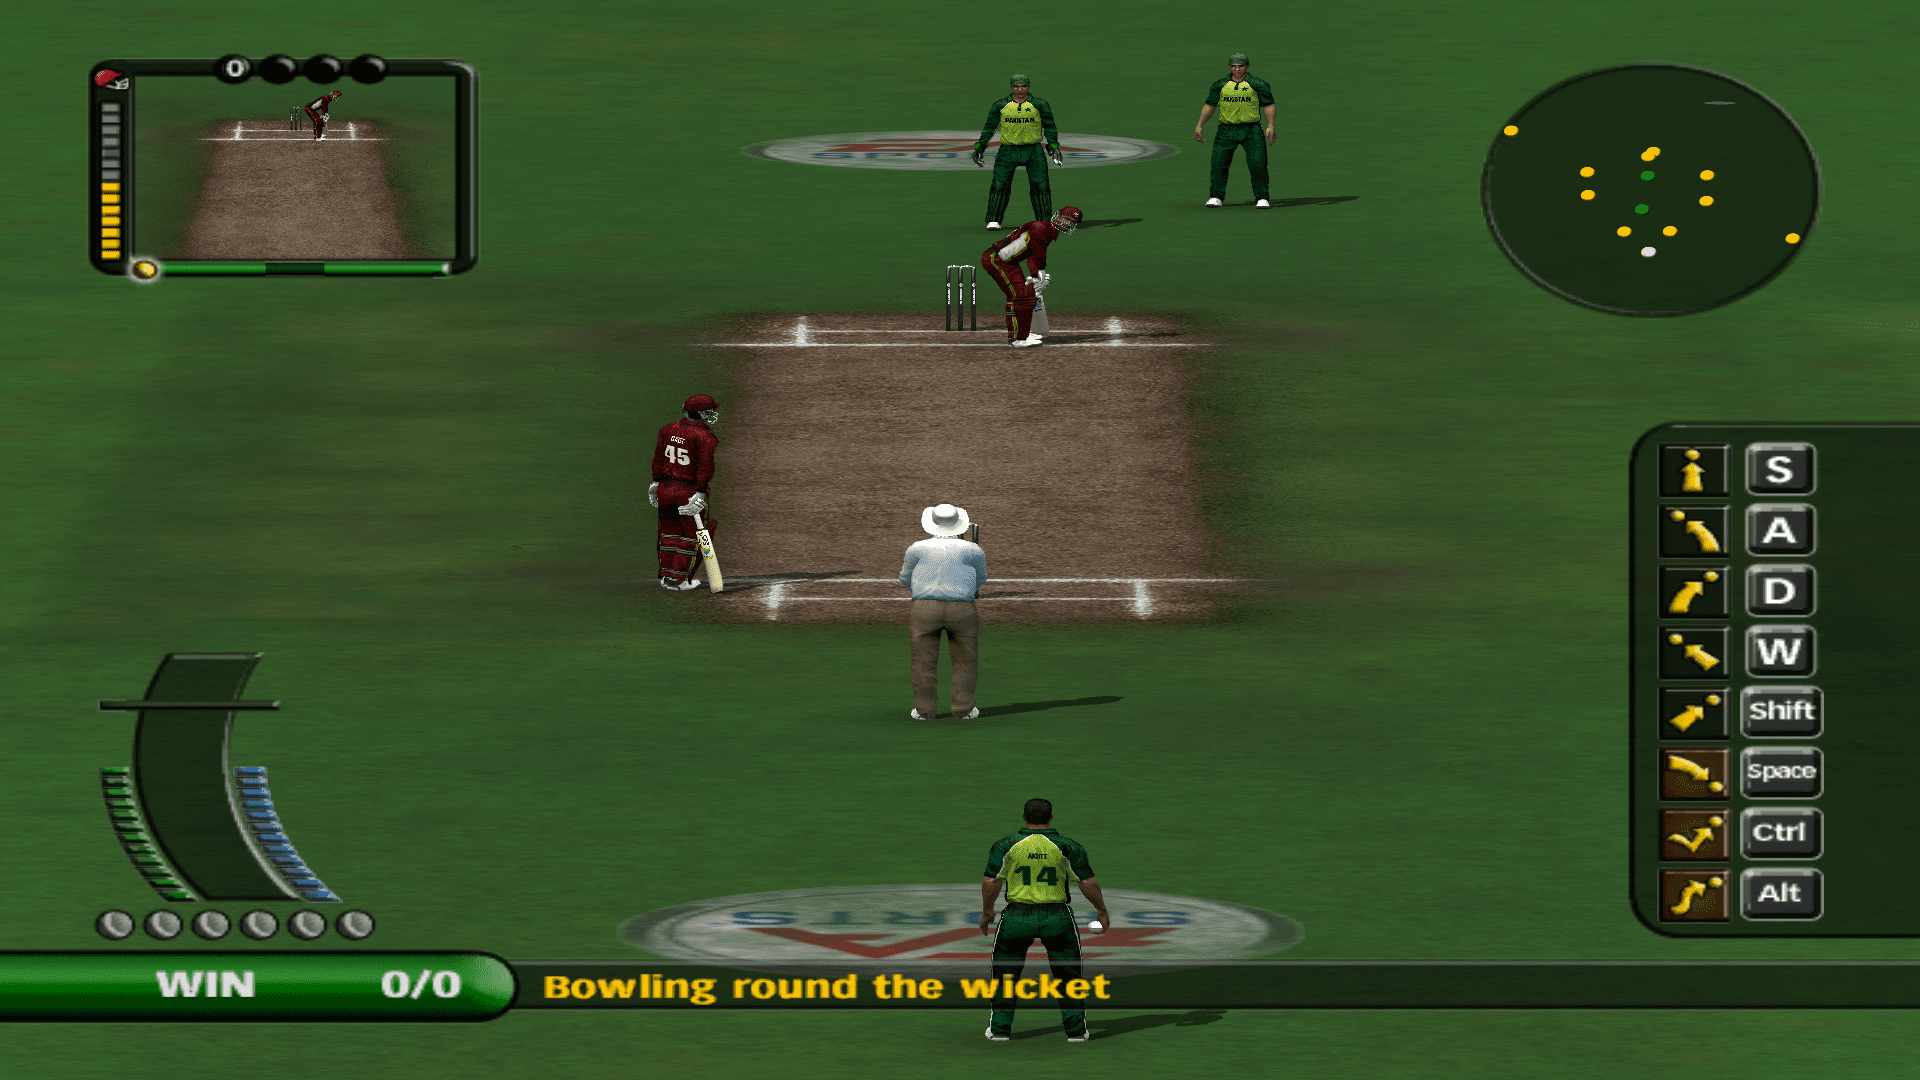 How to use Wireless keyboard as Game Controller to Play EA Cricket 2007 as Two Player Mode